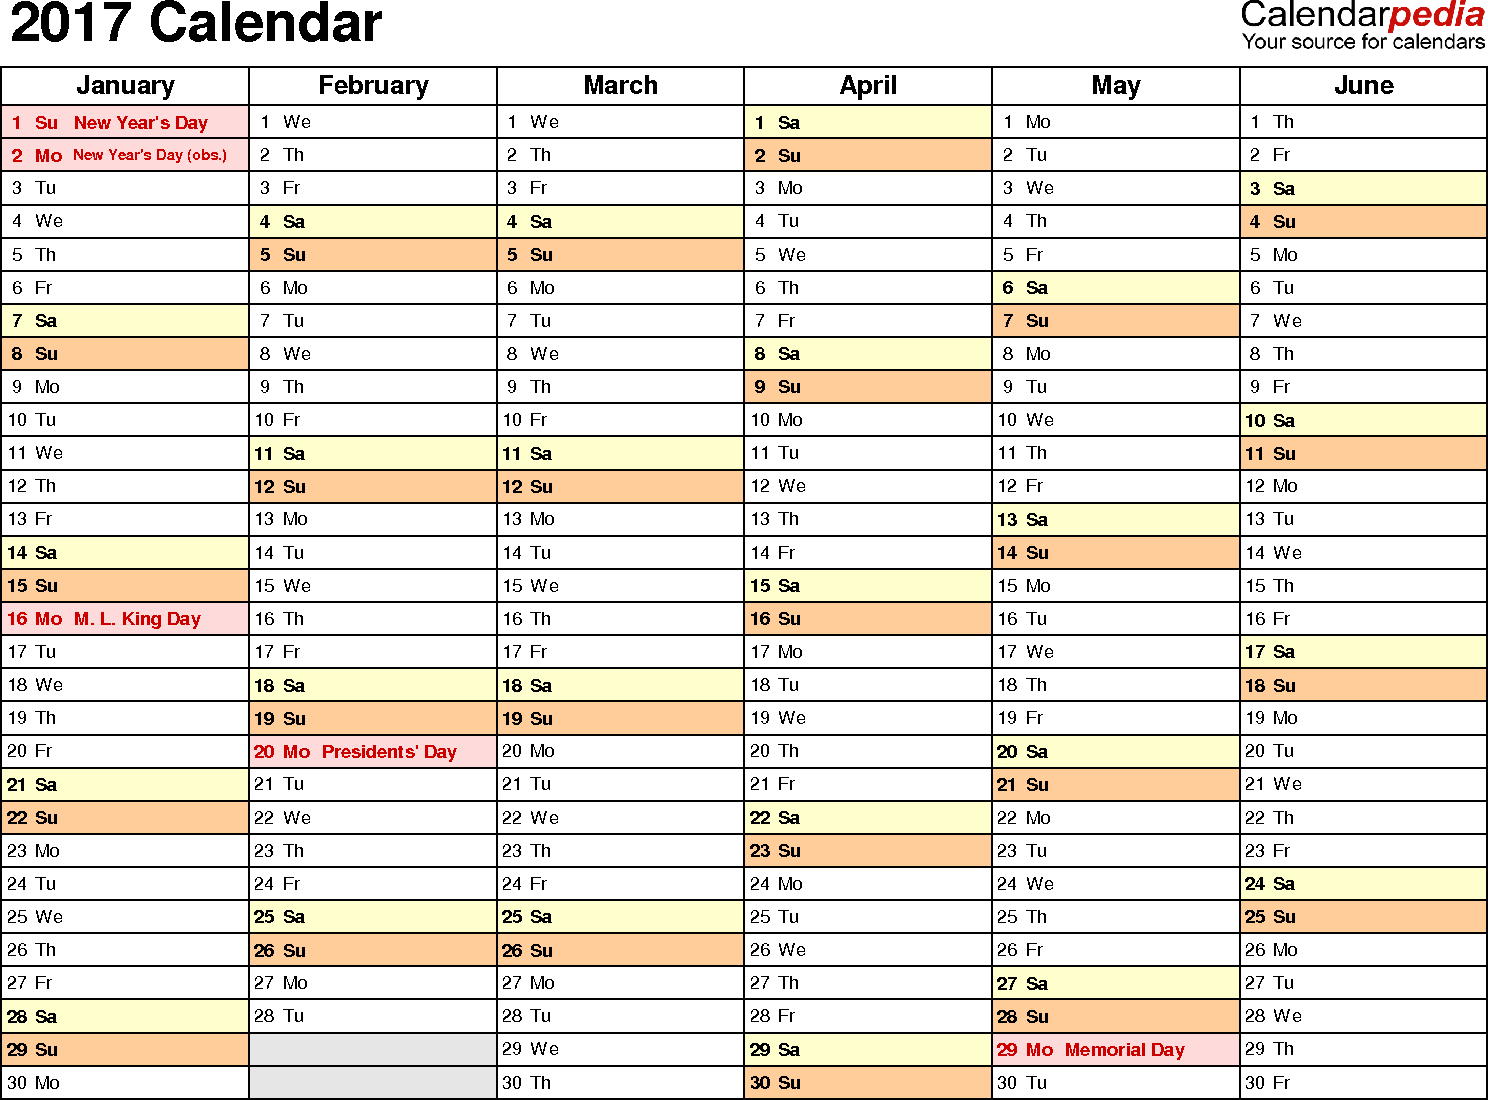 Ediblewildsus  Prepossessing  Calendar  Download  Free Printable Excel Templates Xls With Fascinating Template   Calendar For Excel Months Horizontally  Pages Landscape Orientation With Enchanting Excel Microsoft Also Excel Remove Spaces In Addition Excel Timeline Template And Excel Logo As Well As Excel Day Of Week Additionally Carriage Return In Excel From Calendarpediacom With Ediblewildsus  Fascinating  Calendar  Download  Free Printable Excel Templates Xls With Enchanting Template   Calendar For Excel Months Horizontally  Pages Landscape Orientation And Prepossessing Excel Microsoft Also Excel Remove Spaces In Addition Excel Timeline Template From Calendarpediacom